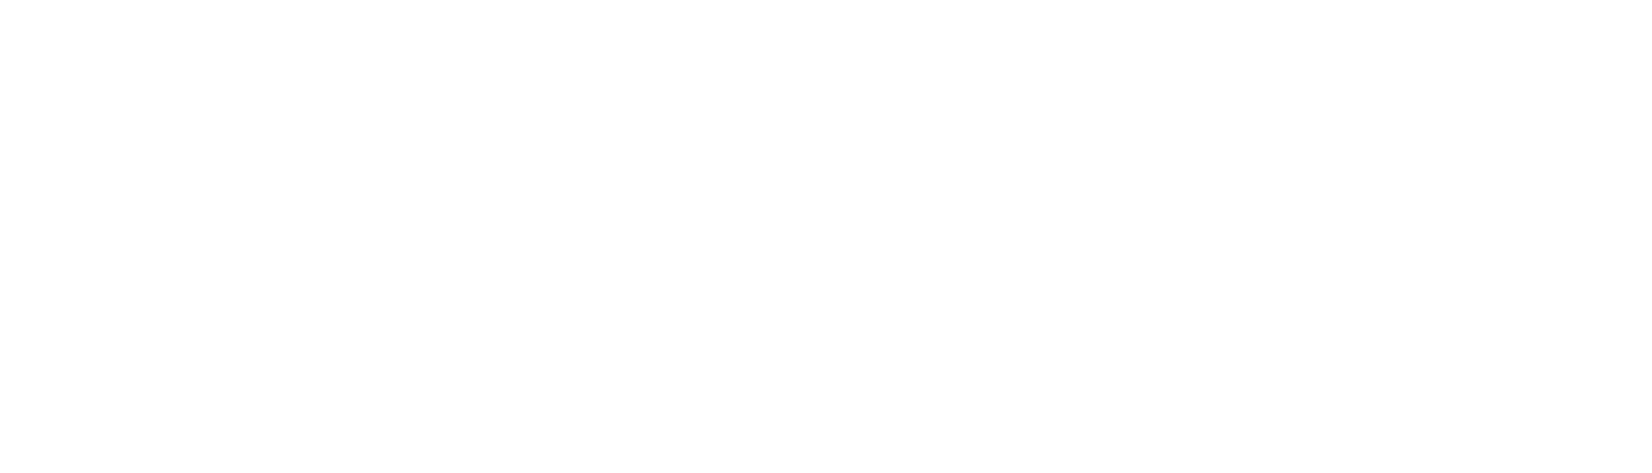 Activate London 2019